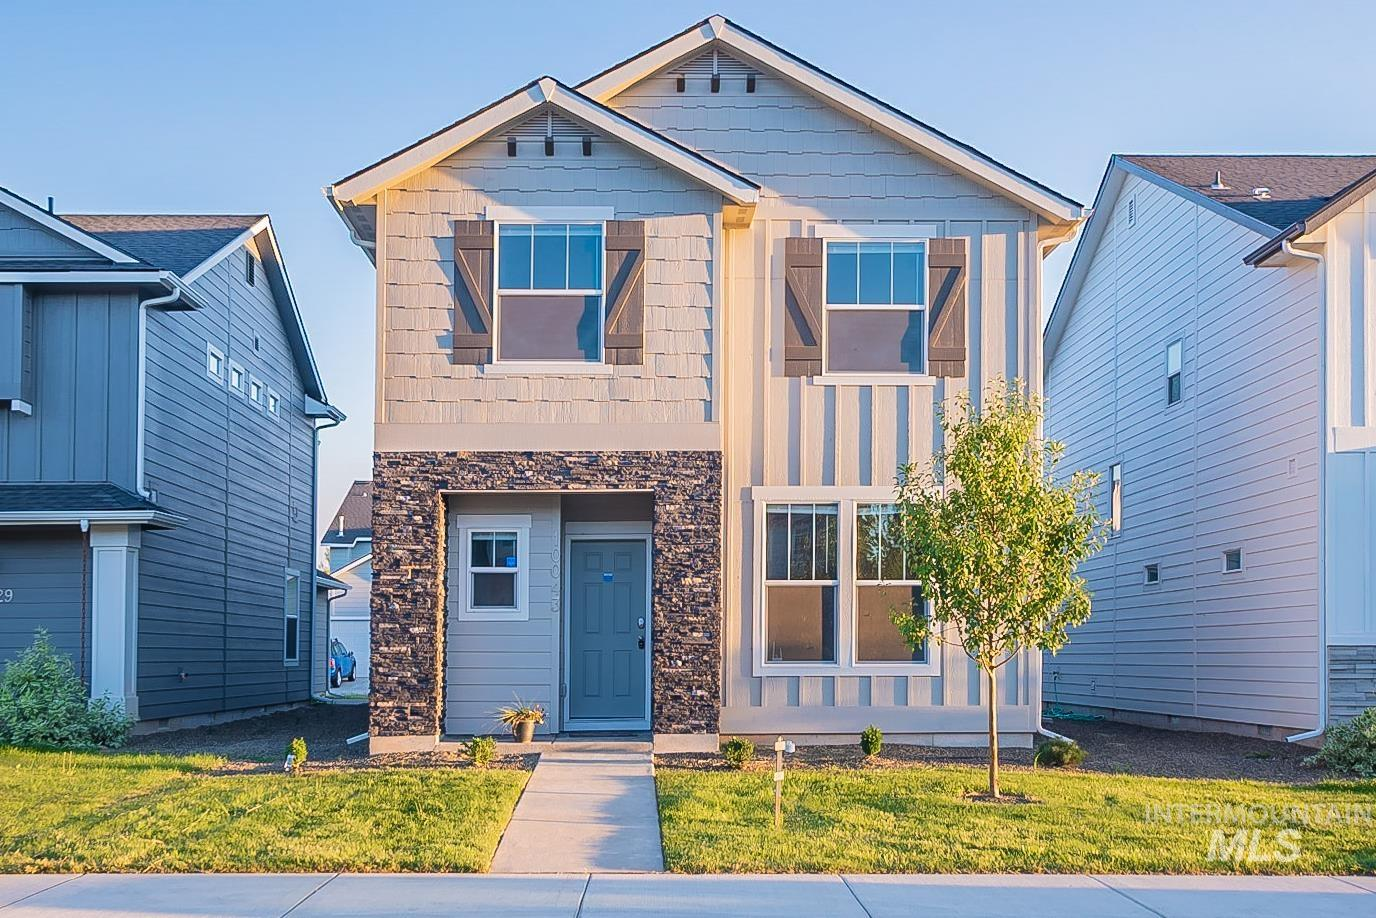 Photo of 10043 Campville Boise ID 83709